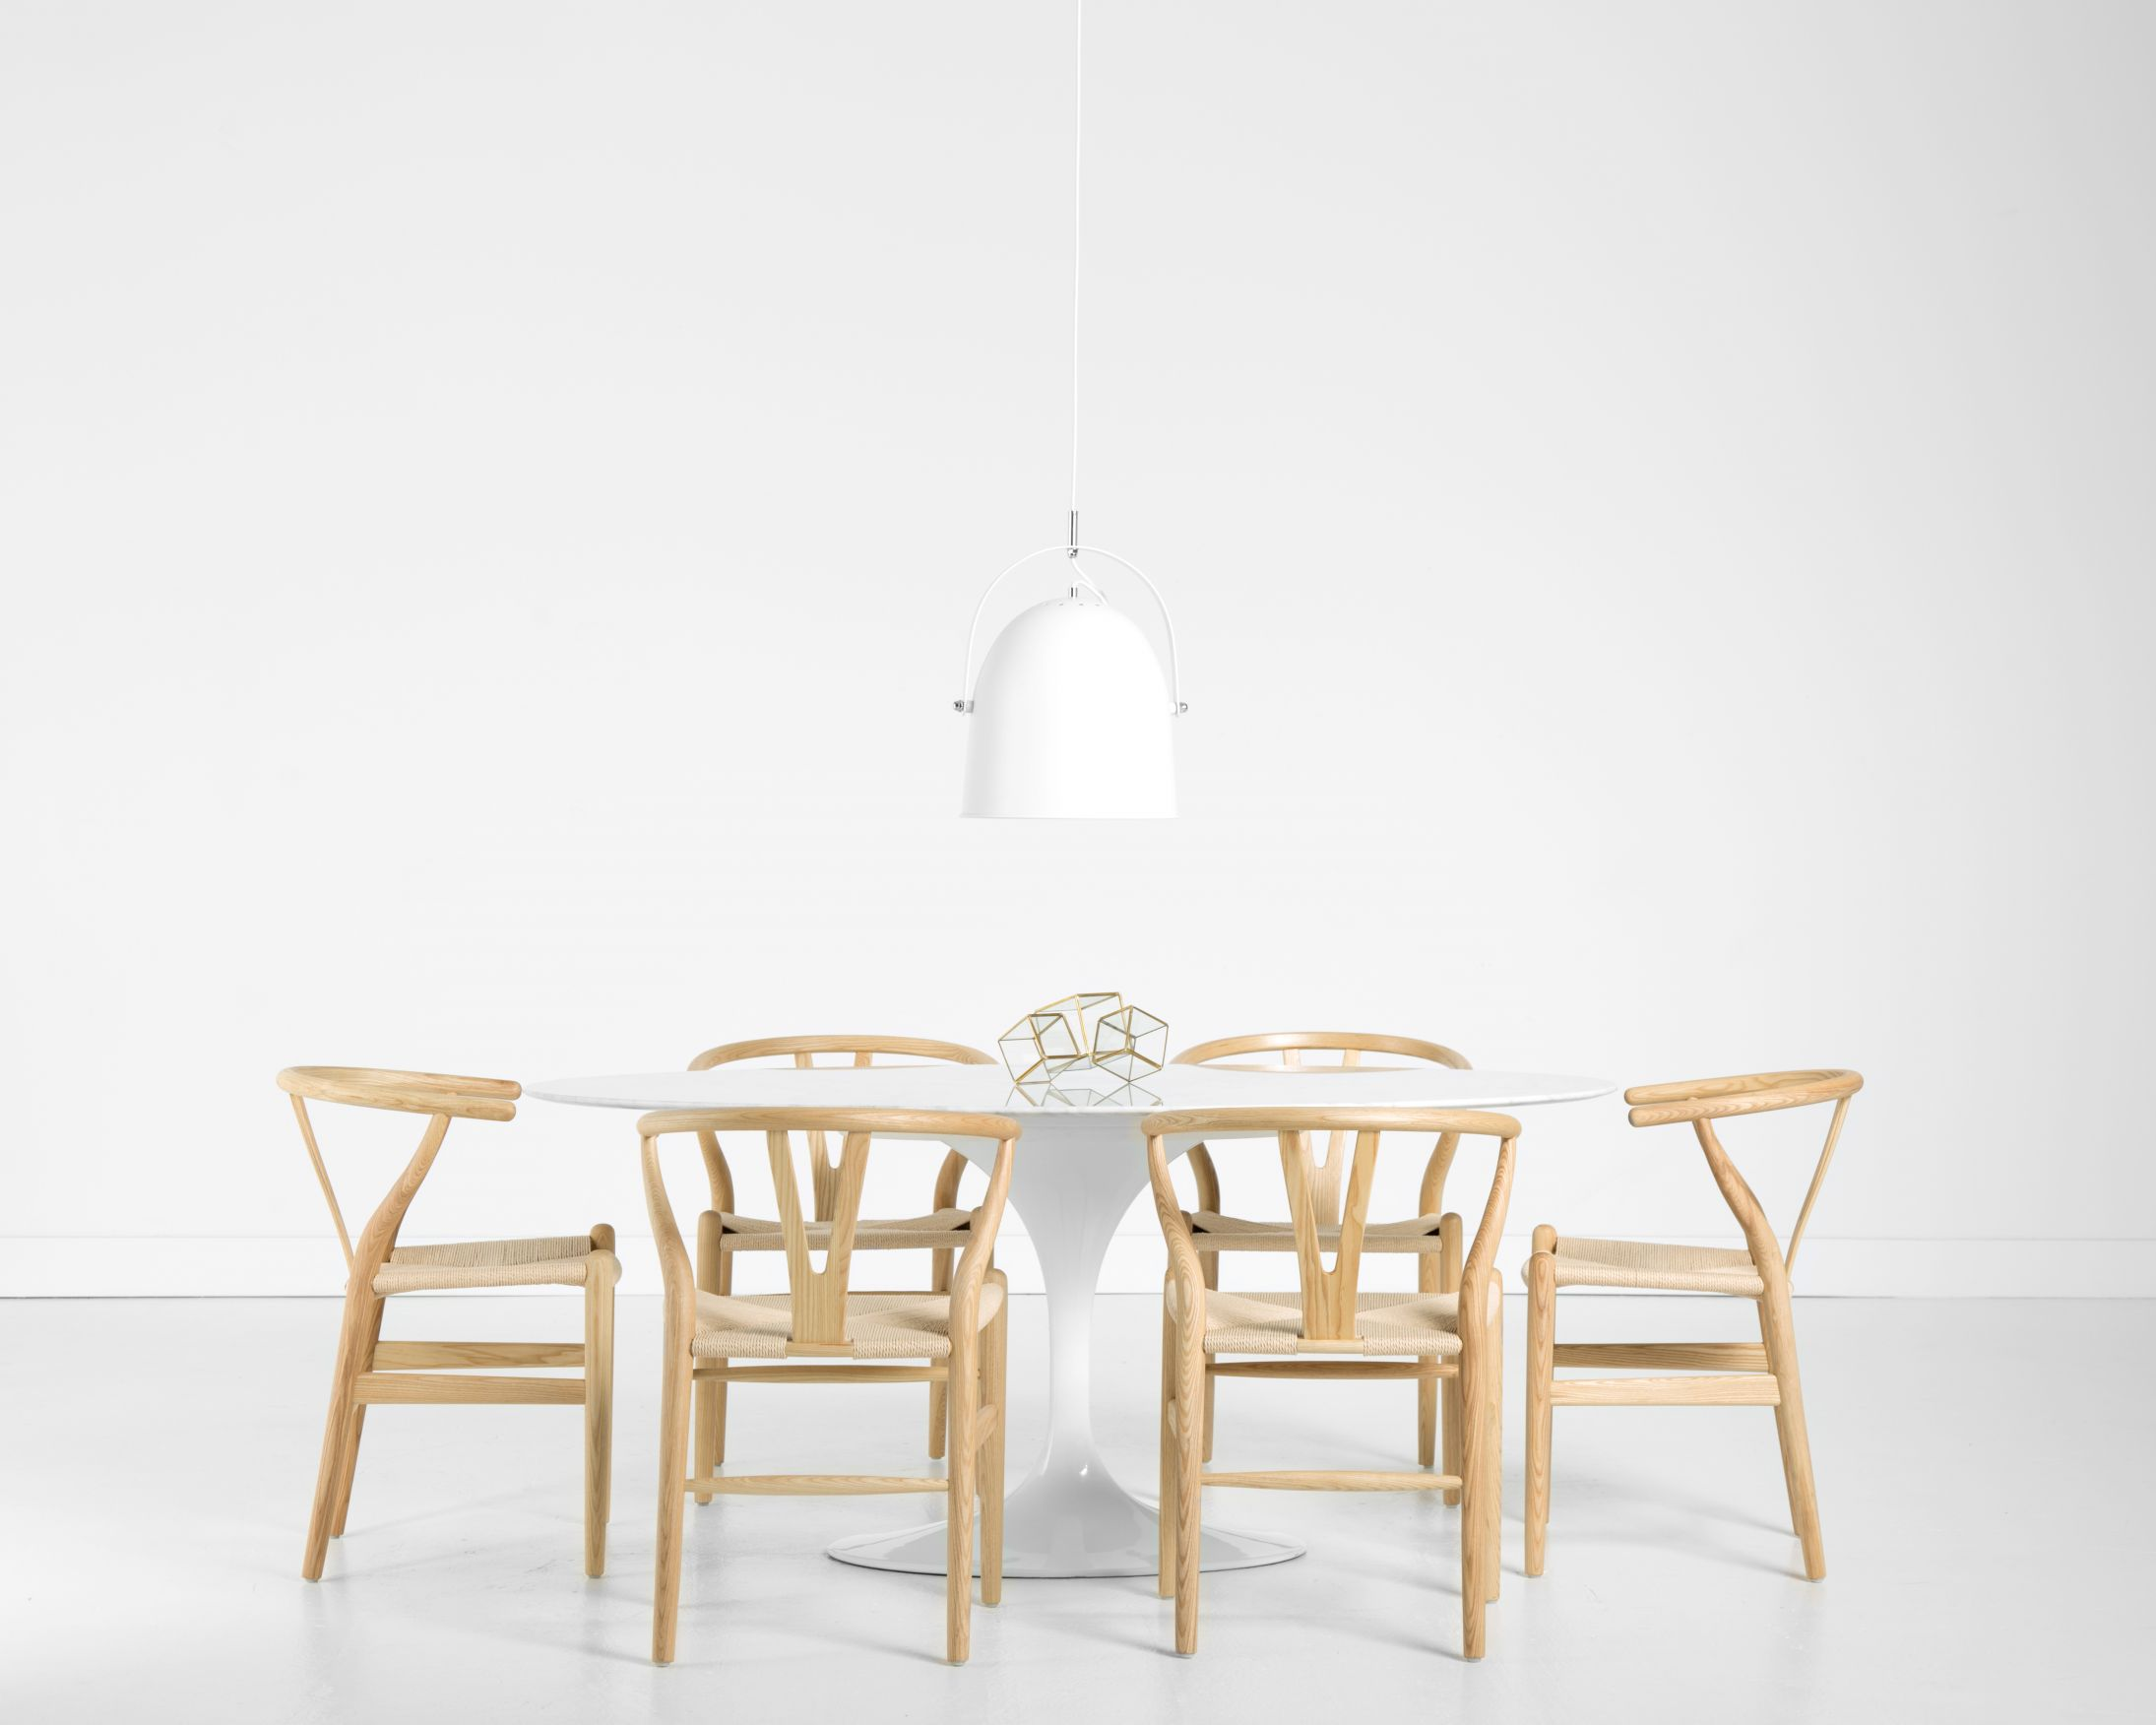 Tulip Table And Chairs 67u0027u0027 Oval Tulip Table Carrara Marble 7 Piece Dining